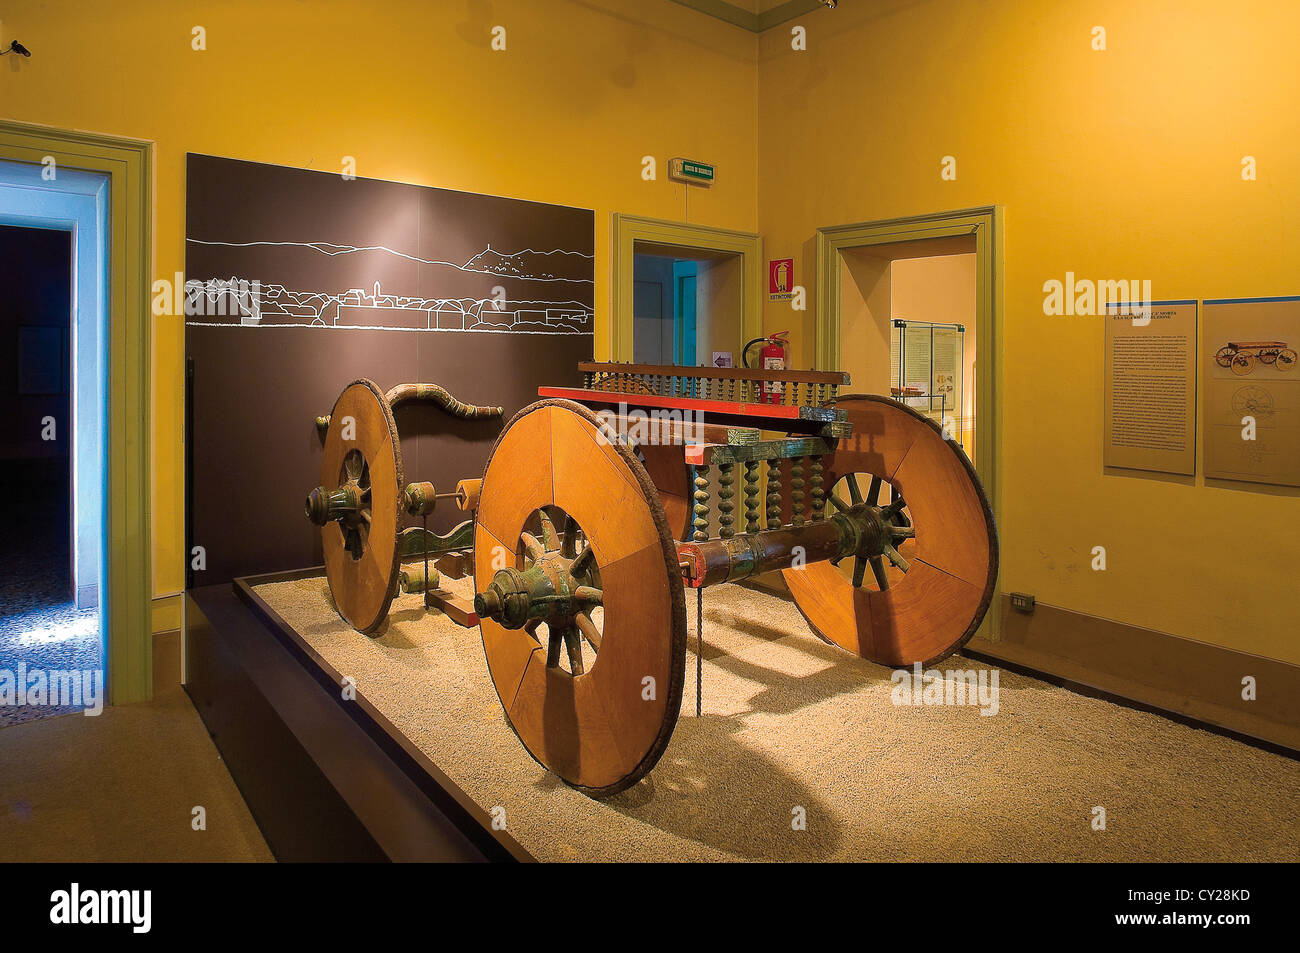 Europe Italy Lombardy Como  Palazzo Giovio Archaeological Museum Room Prehistory The Carriage of the Ca Morta - Stock Image